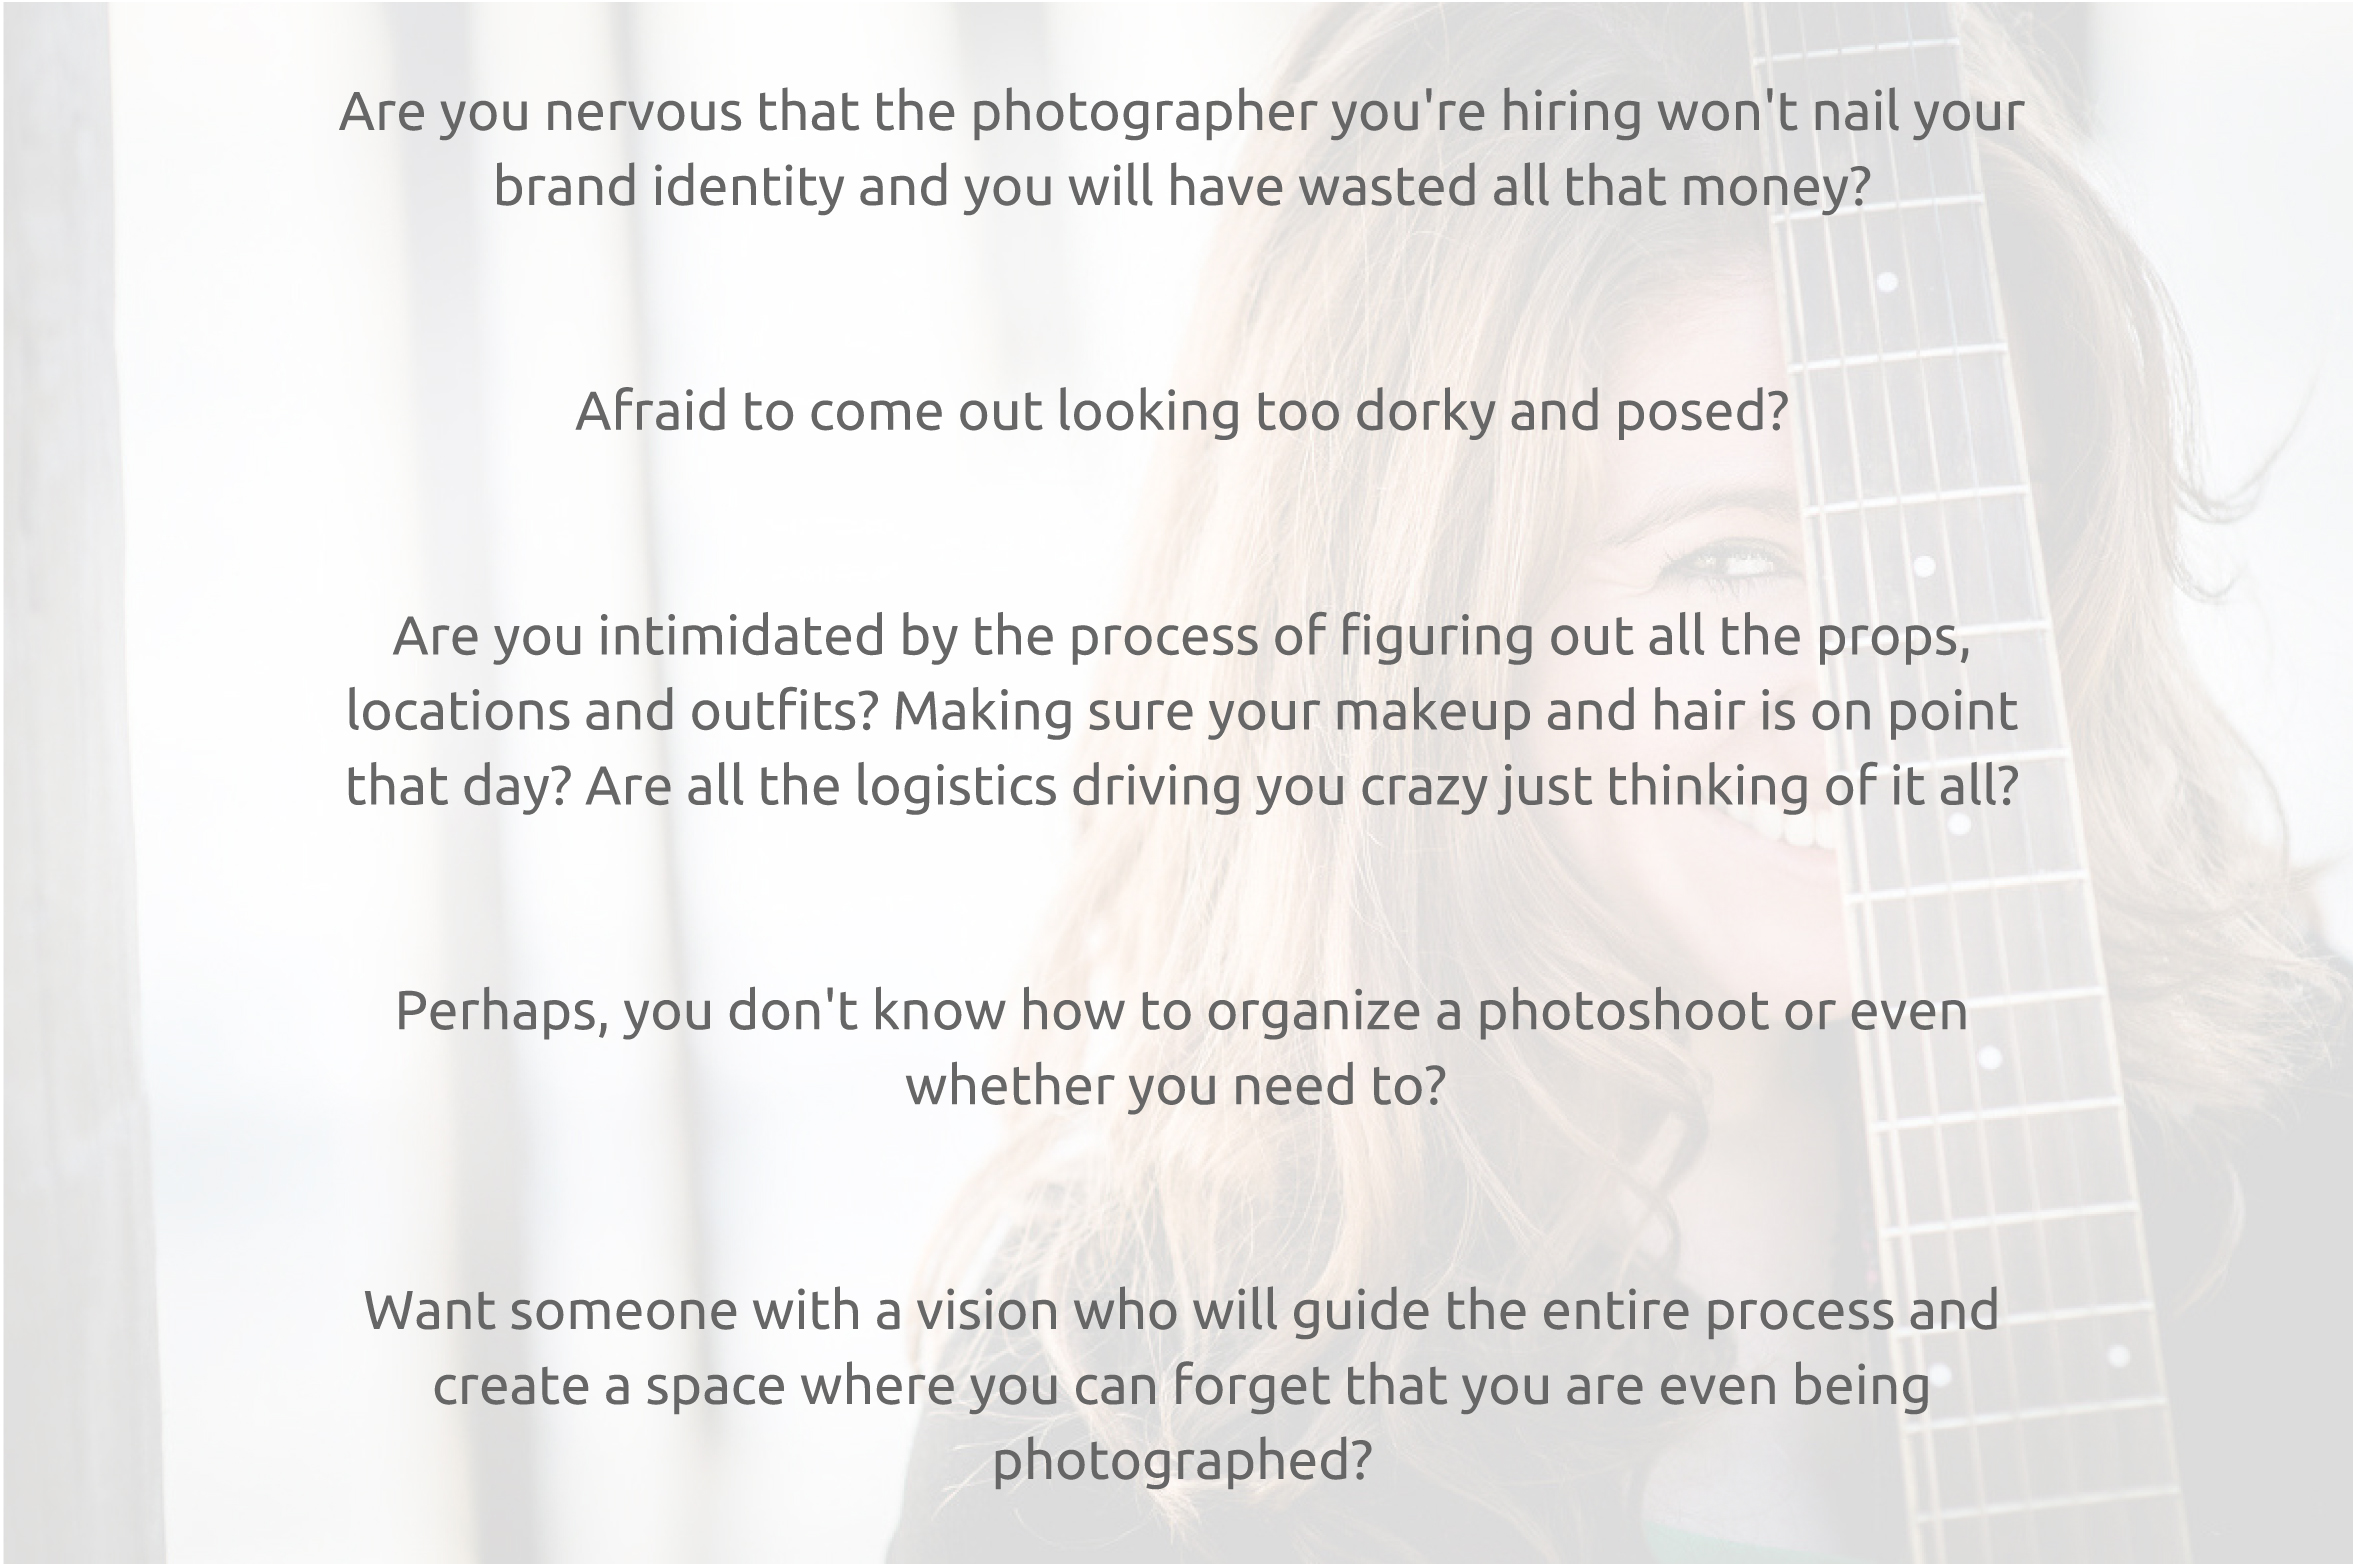 Are you nervous that the photographer you're hiring won't nail your brand identity and you will have wasted all that money-Afraid to come out looking too dorky and posed-Are you intimidated by the process of figuring.jpg